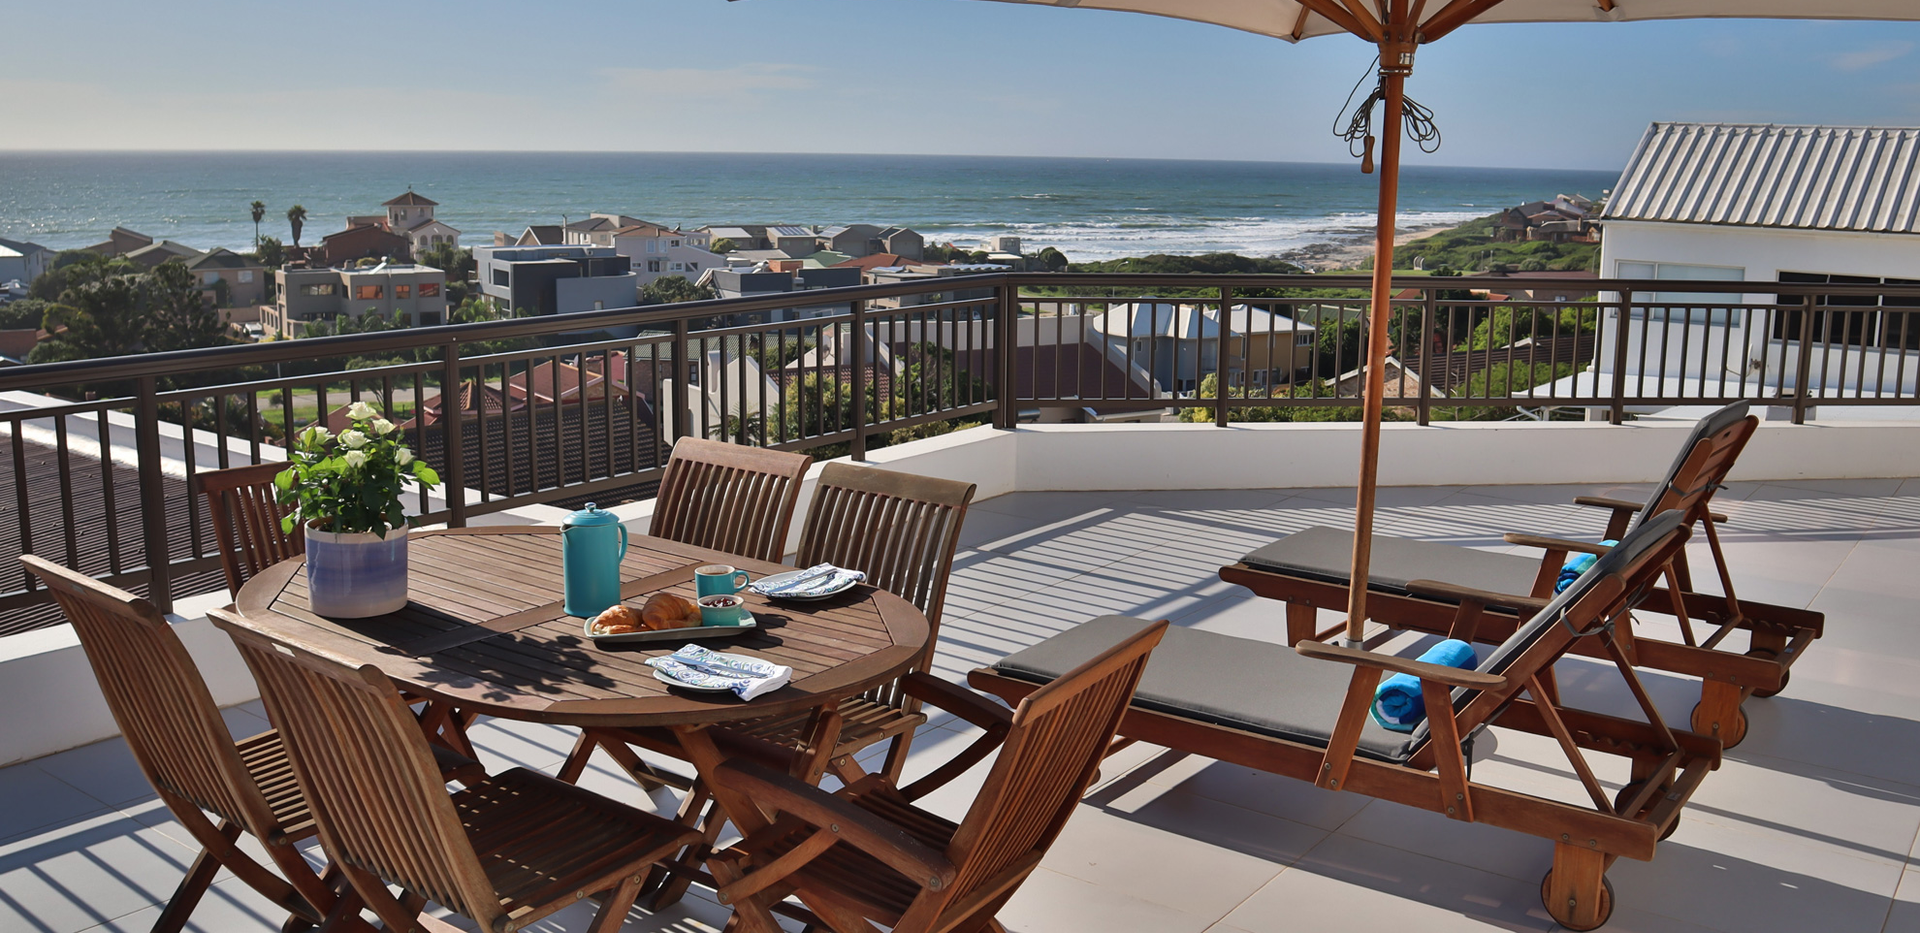 JBay-UNIT10_penthouse-patio-with-a-view.